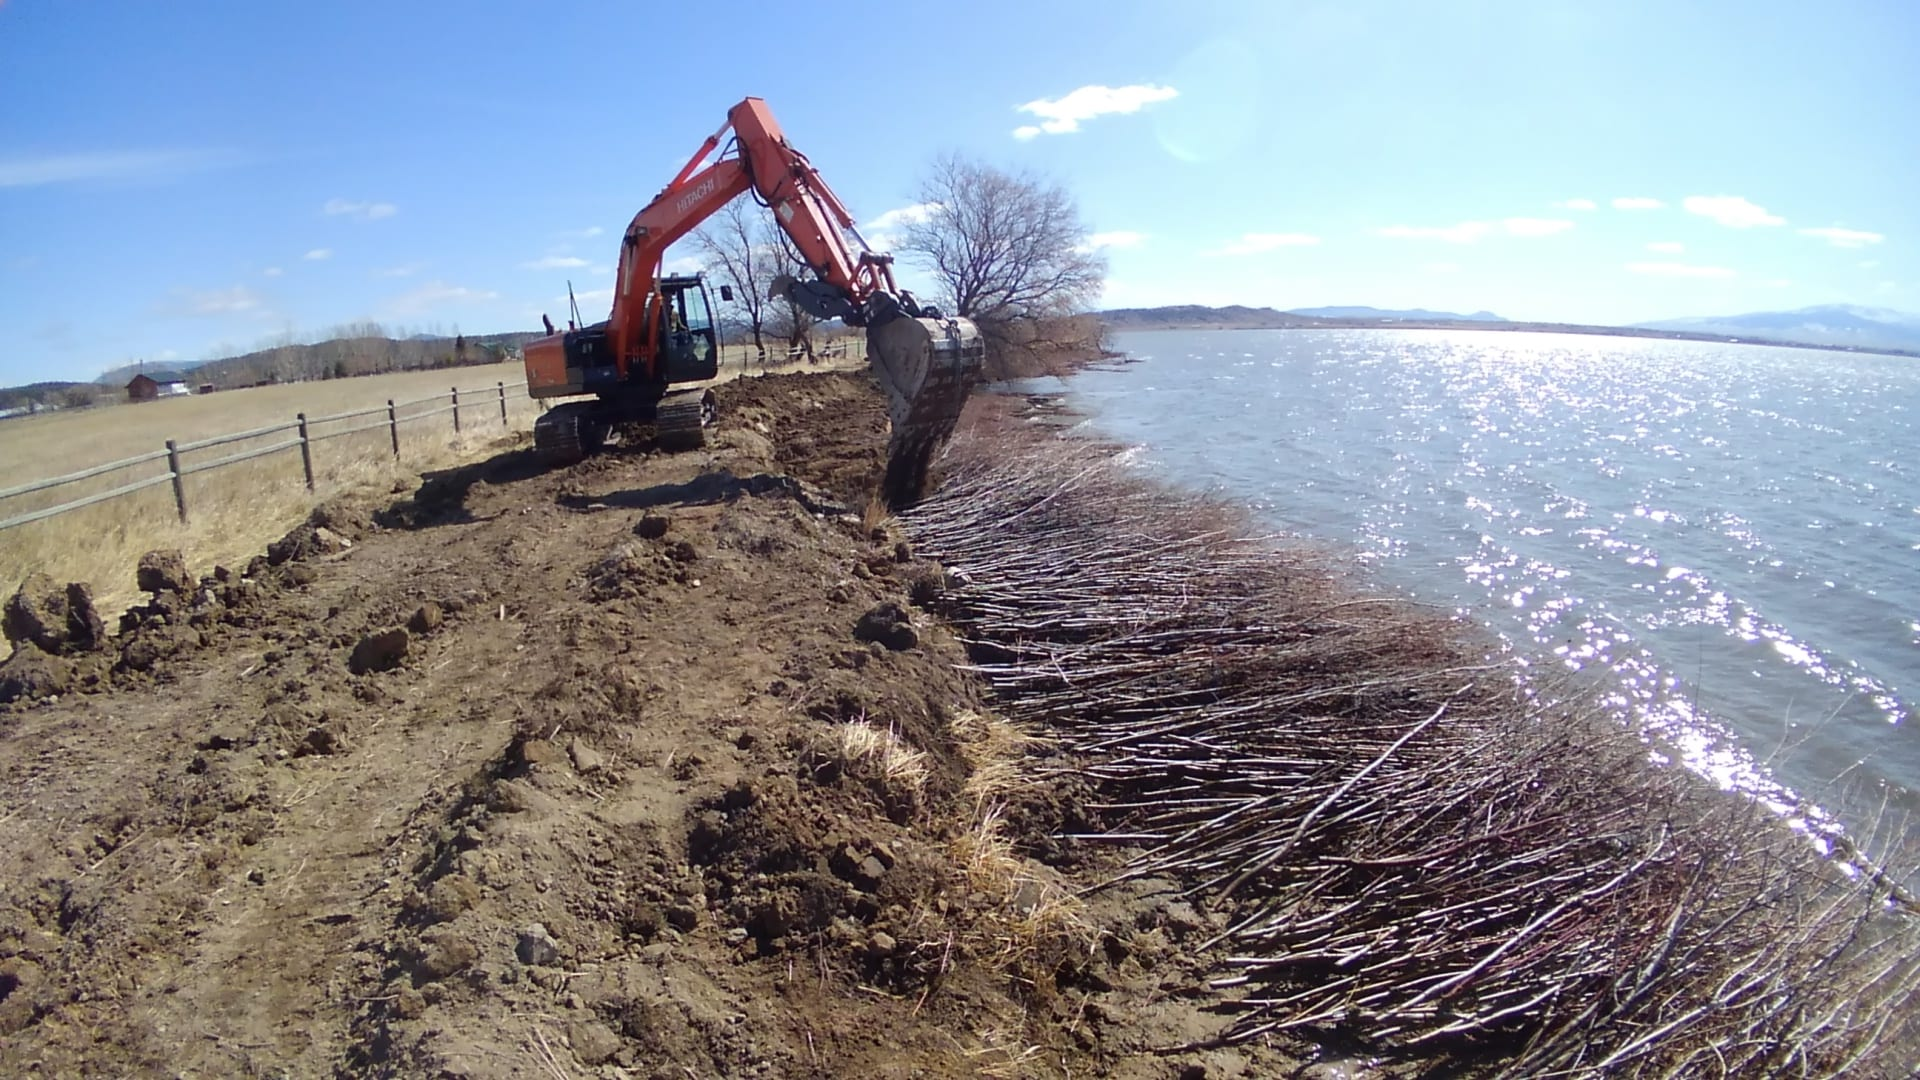 Willow soil lift, Lake Helena, Montana